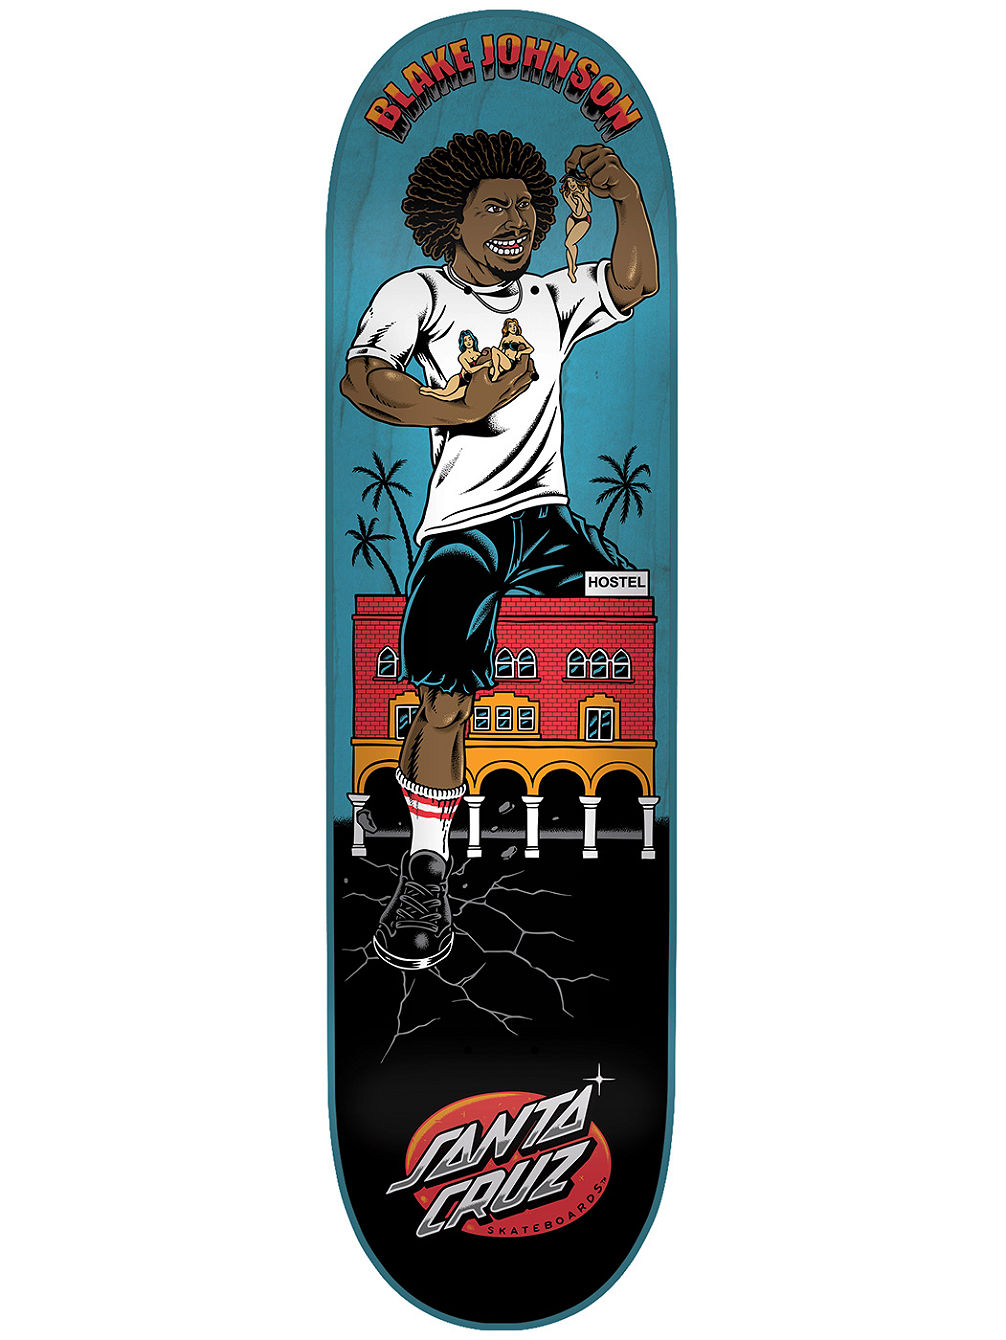 santa-cruz-johnson-venice-beast-8375-skateboard-d